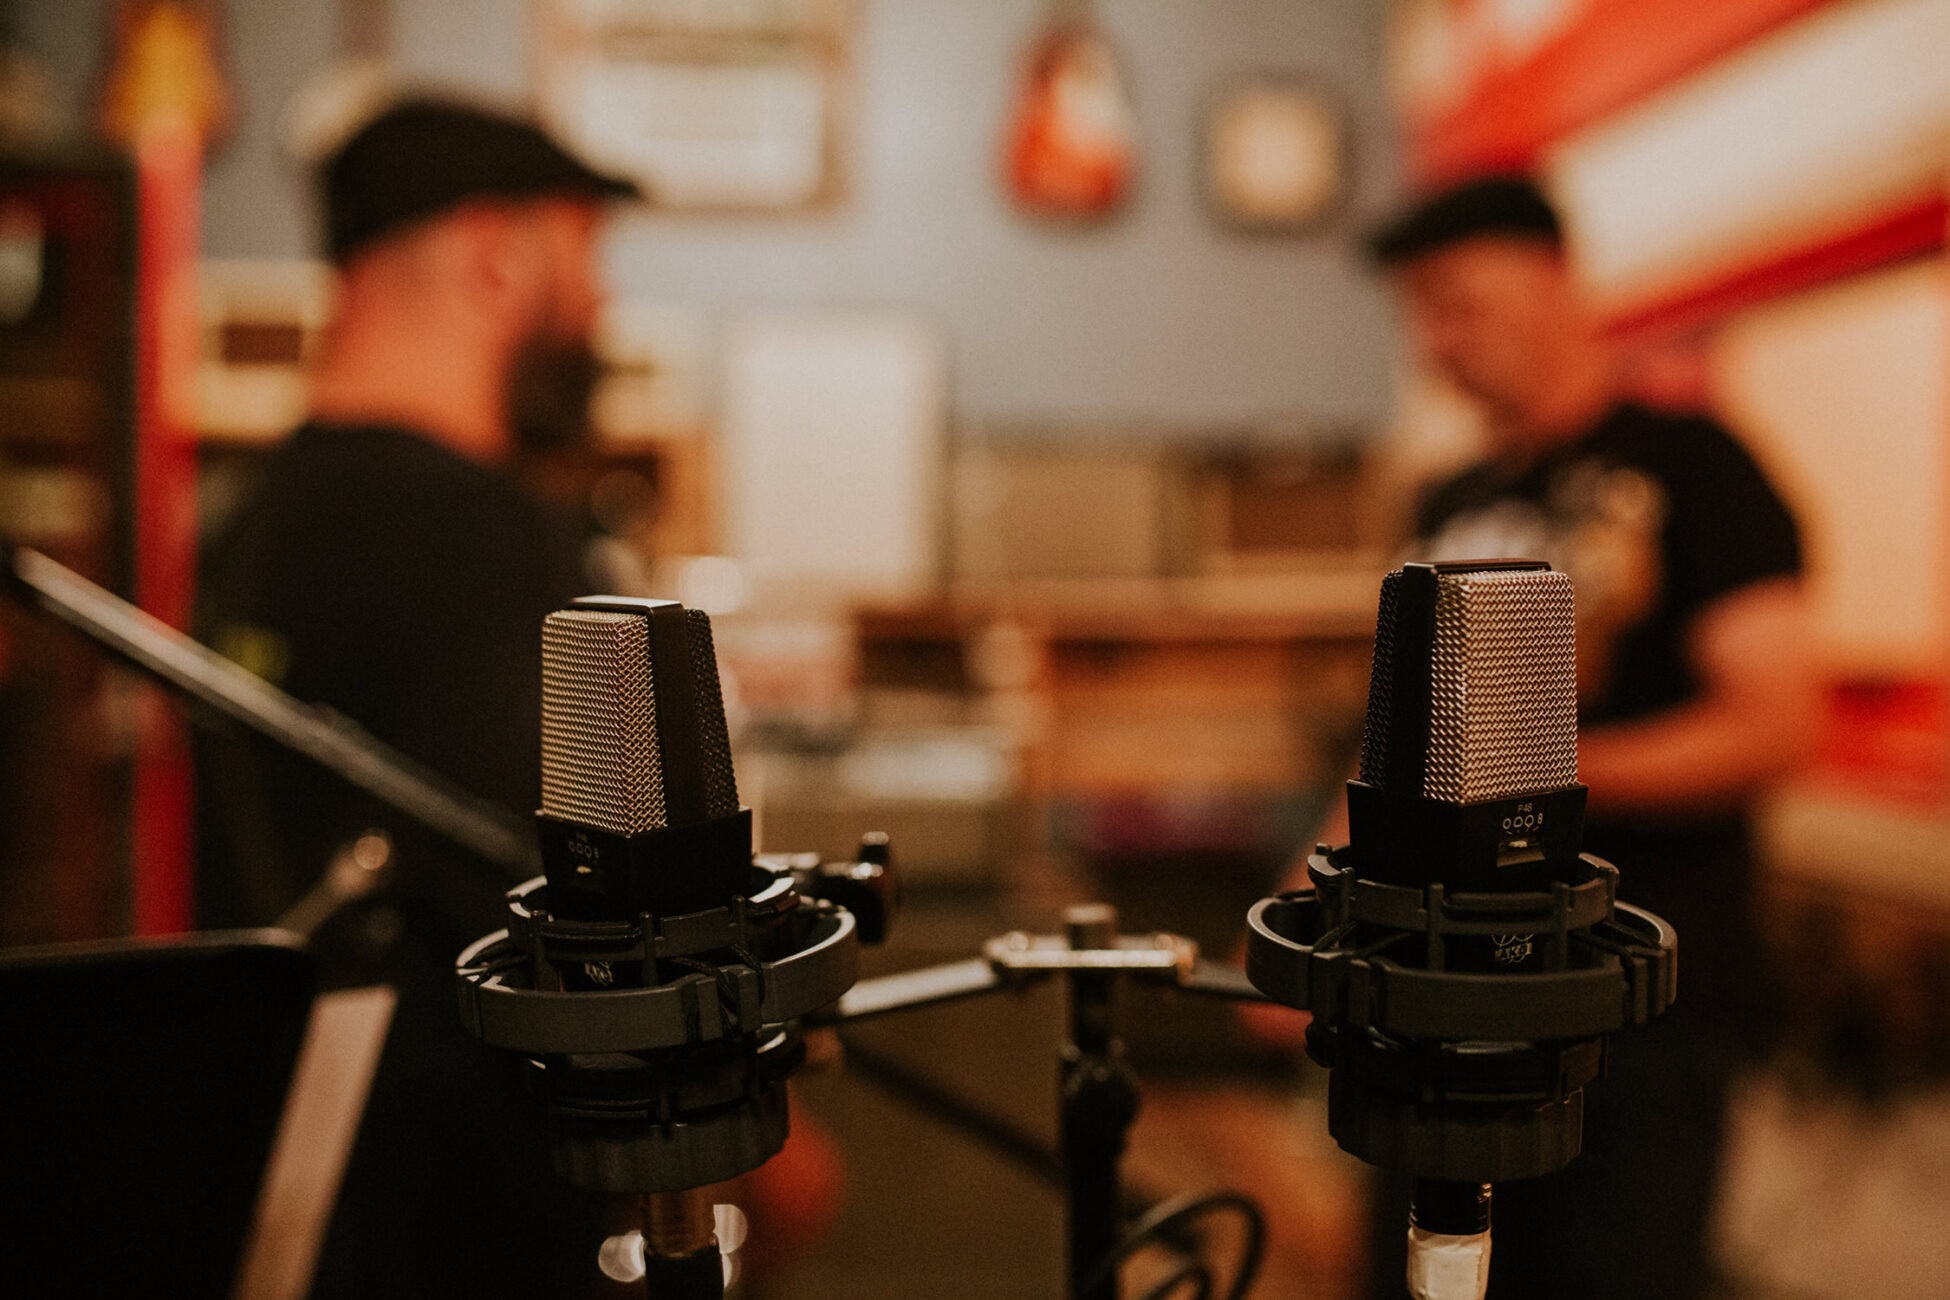 microphone details during a branding photo session